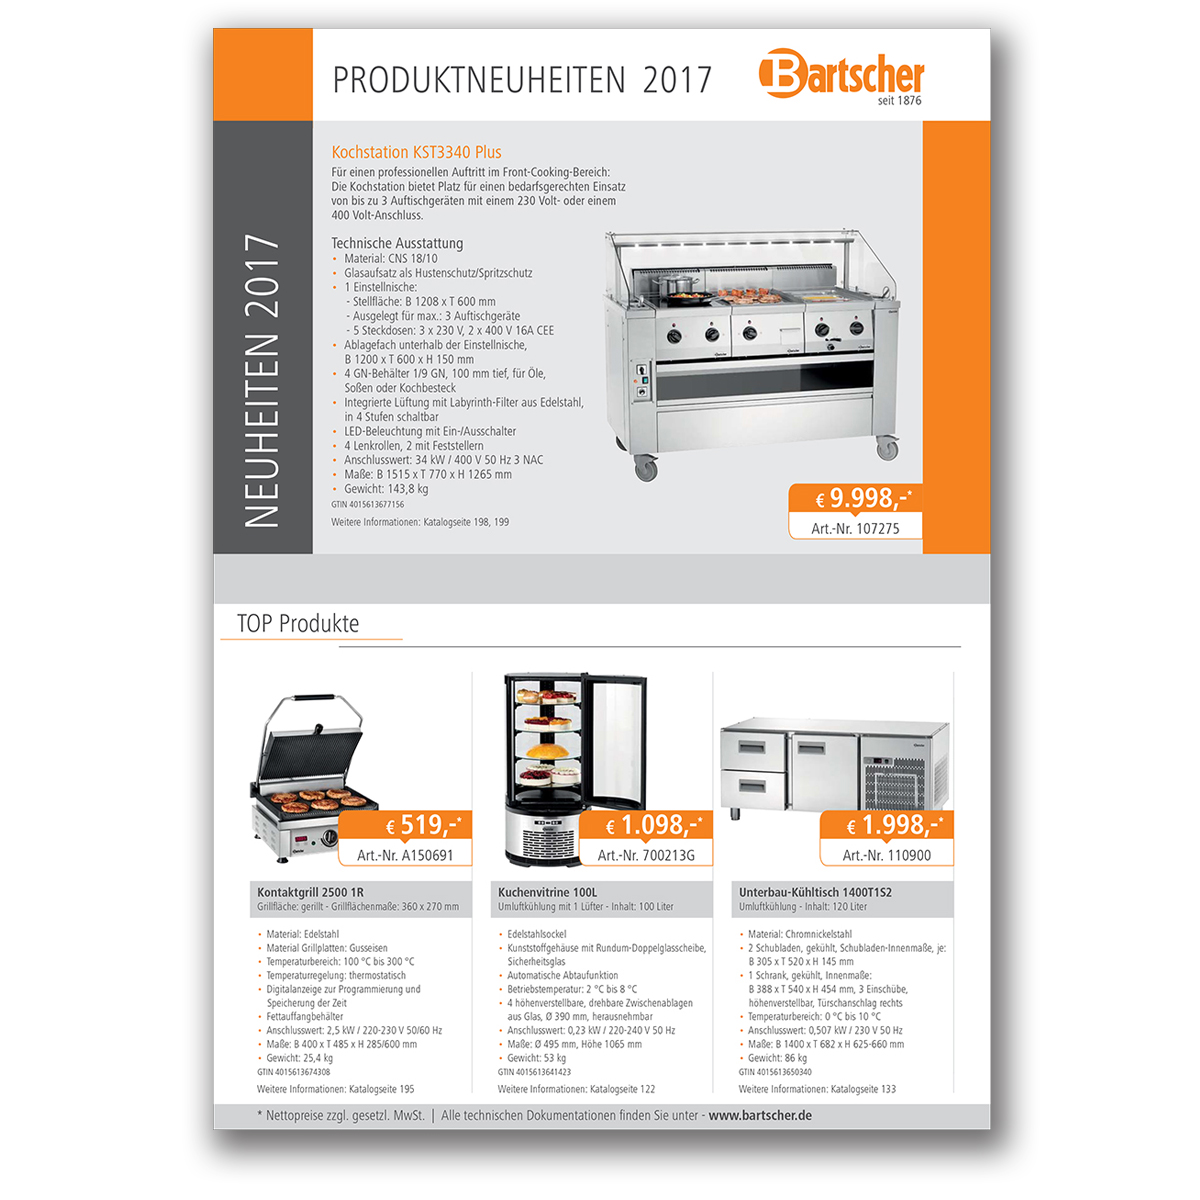 new product flyer